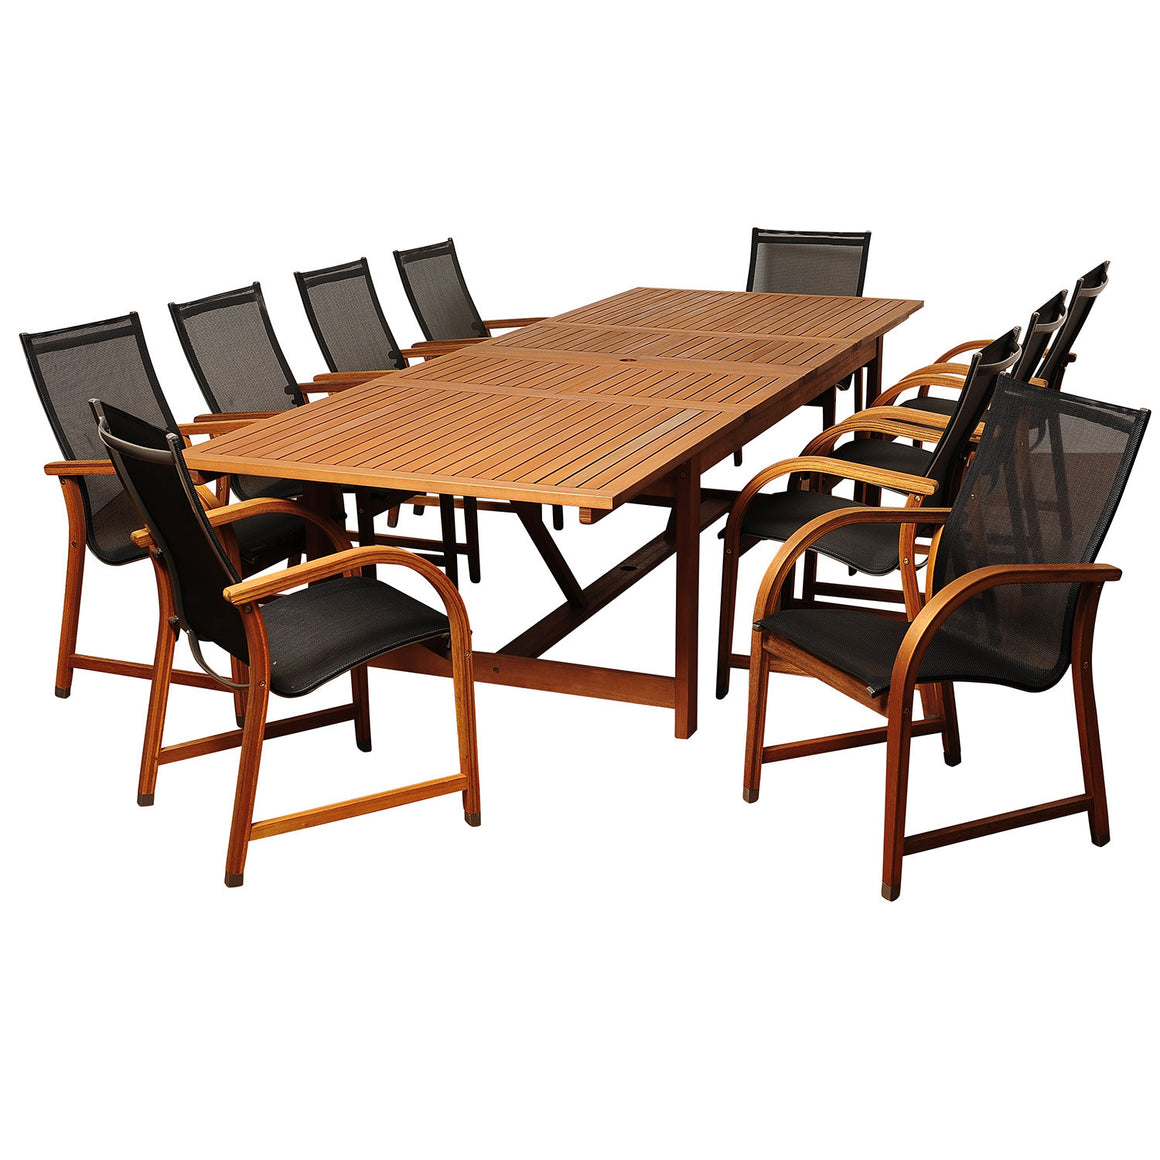 Damon 11 Piece Eucalyptus Extendable Rectangular Patio Dining Set , International Home Miami- grayburd